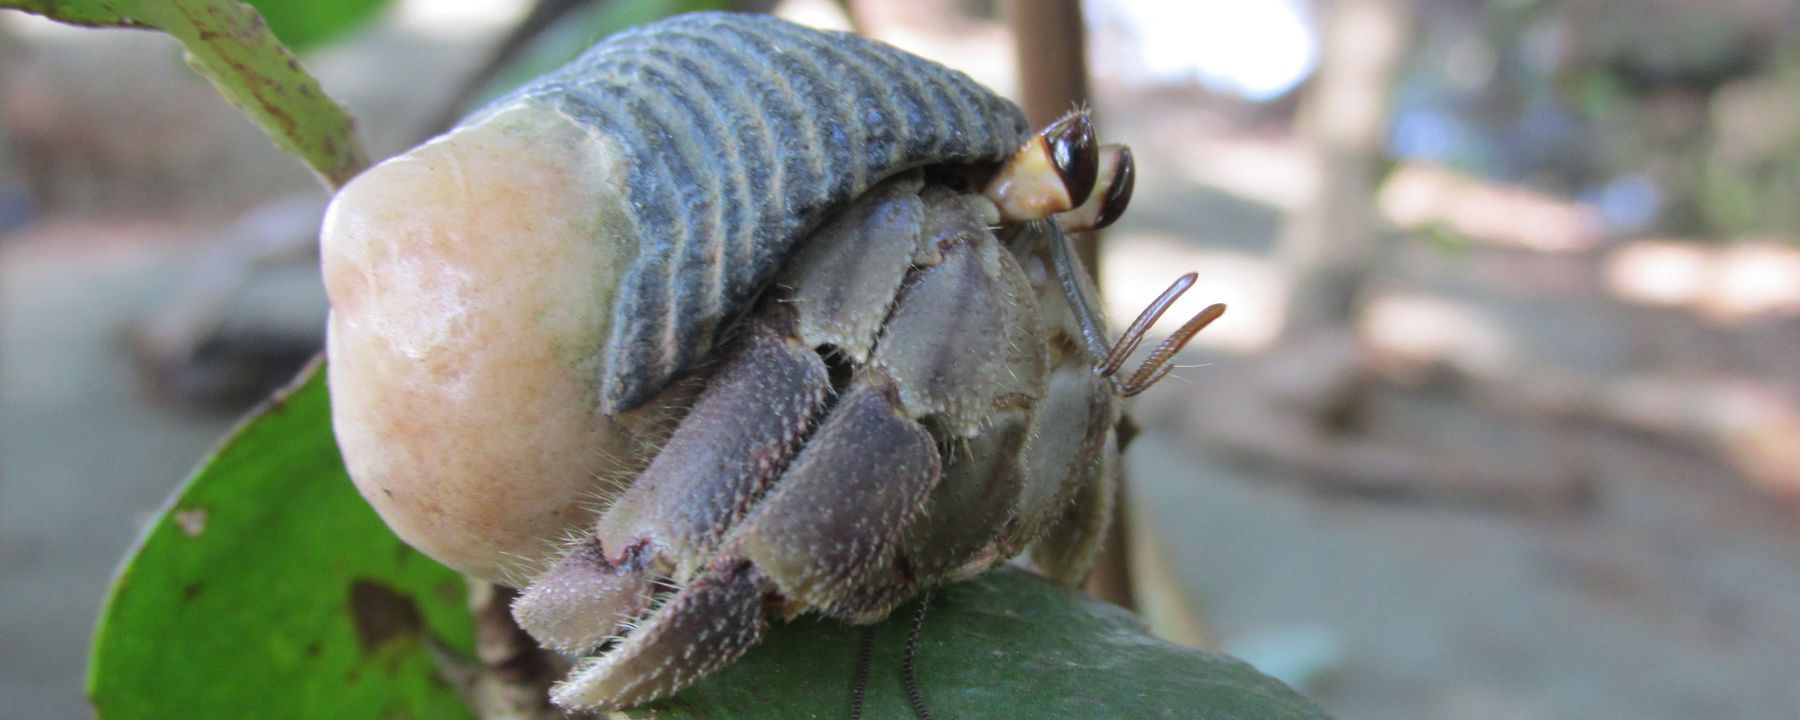 Larger Hermit Crab Penises May Prevent Shell Theft